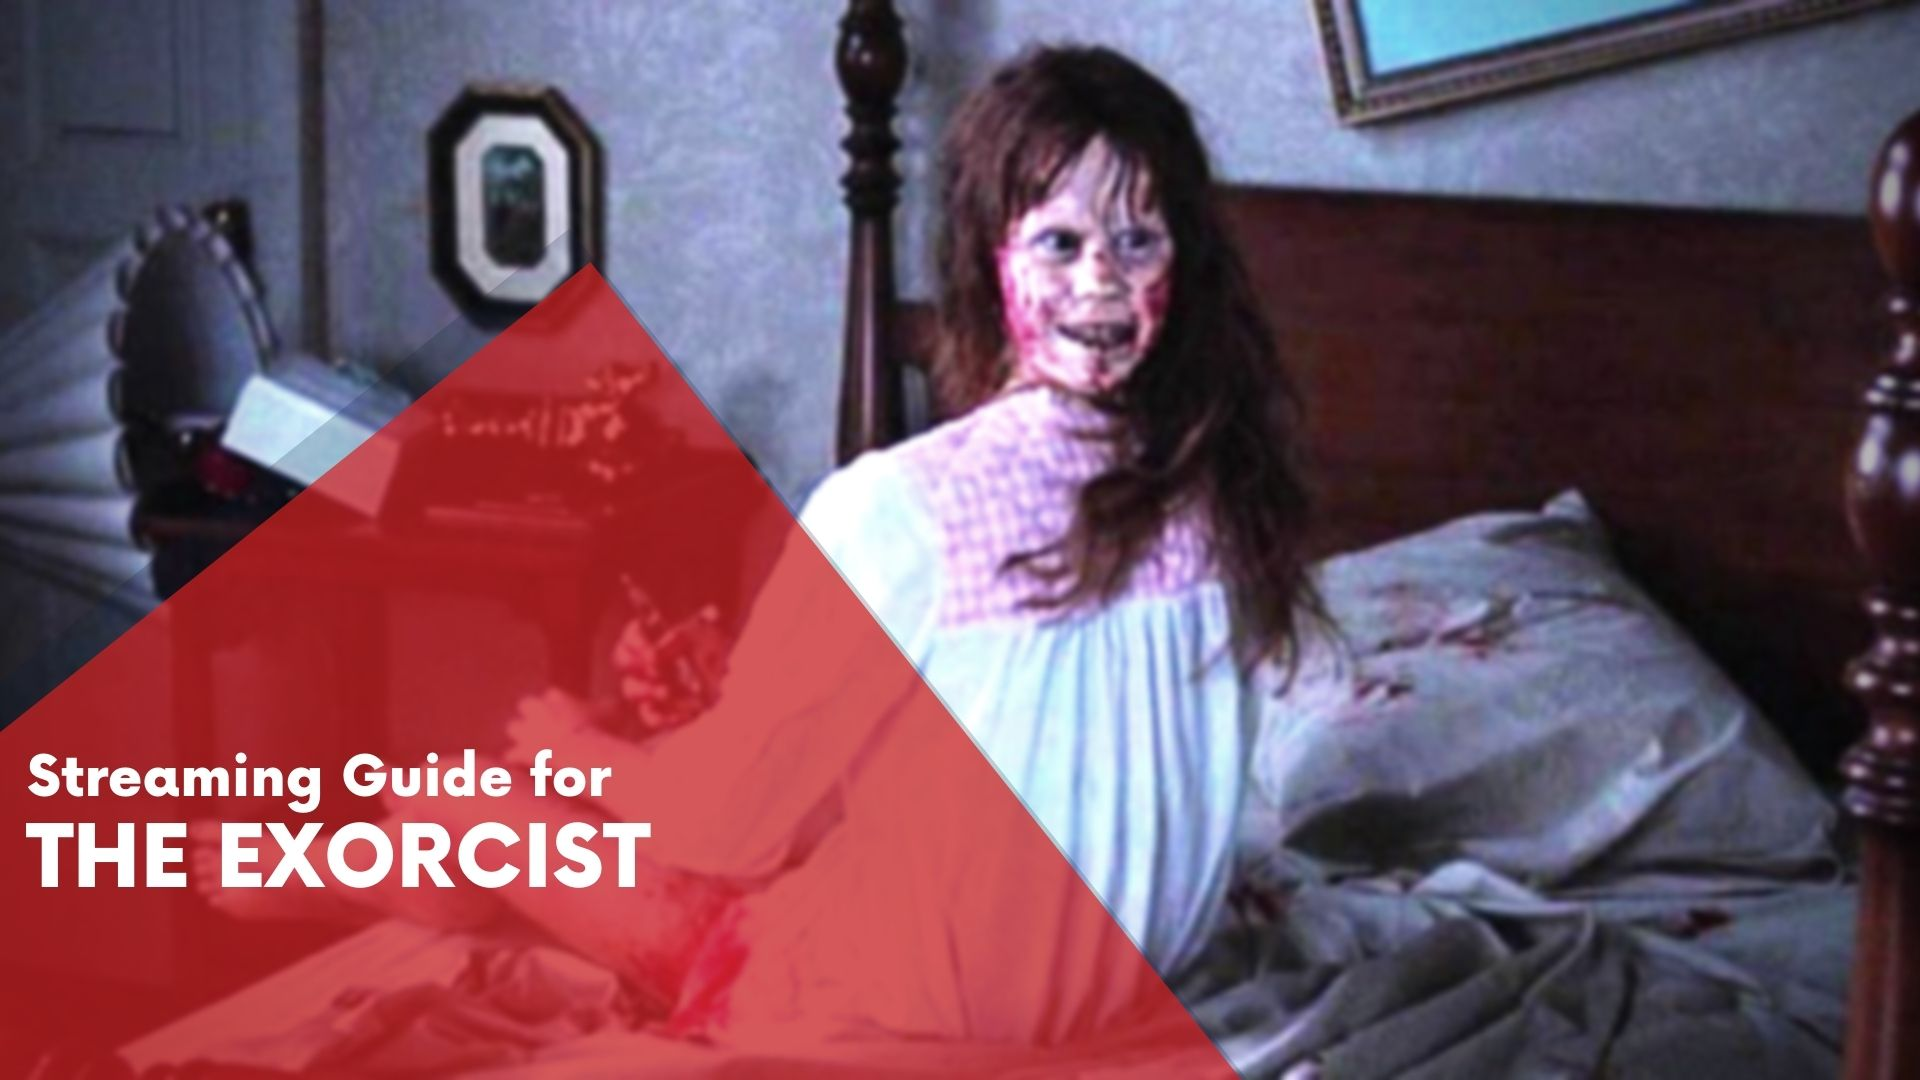 Answering if The Exorcist is available on Hulu